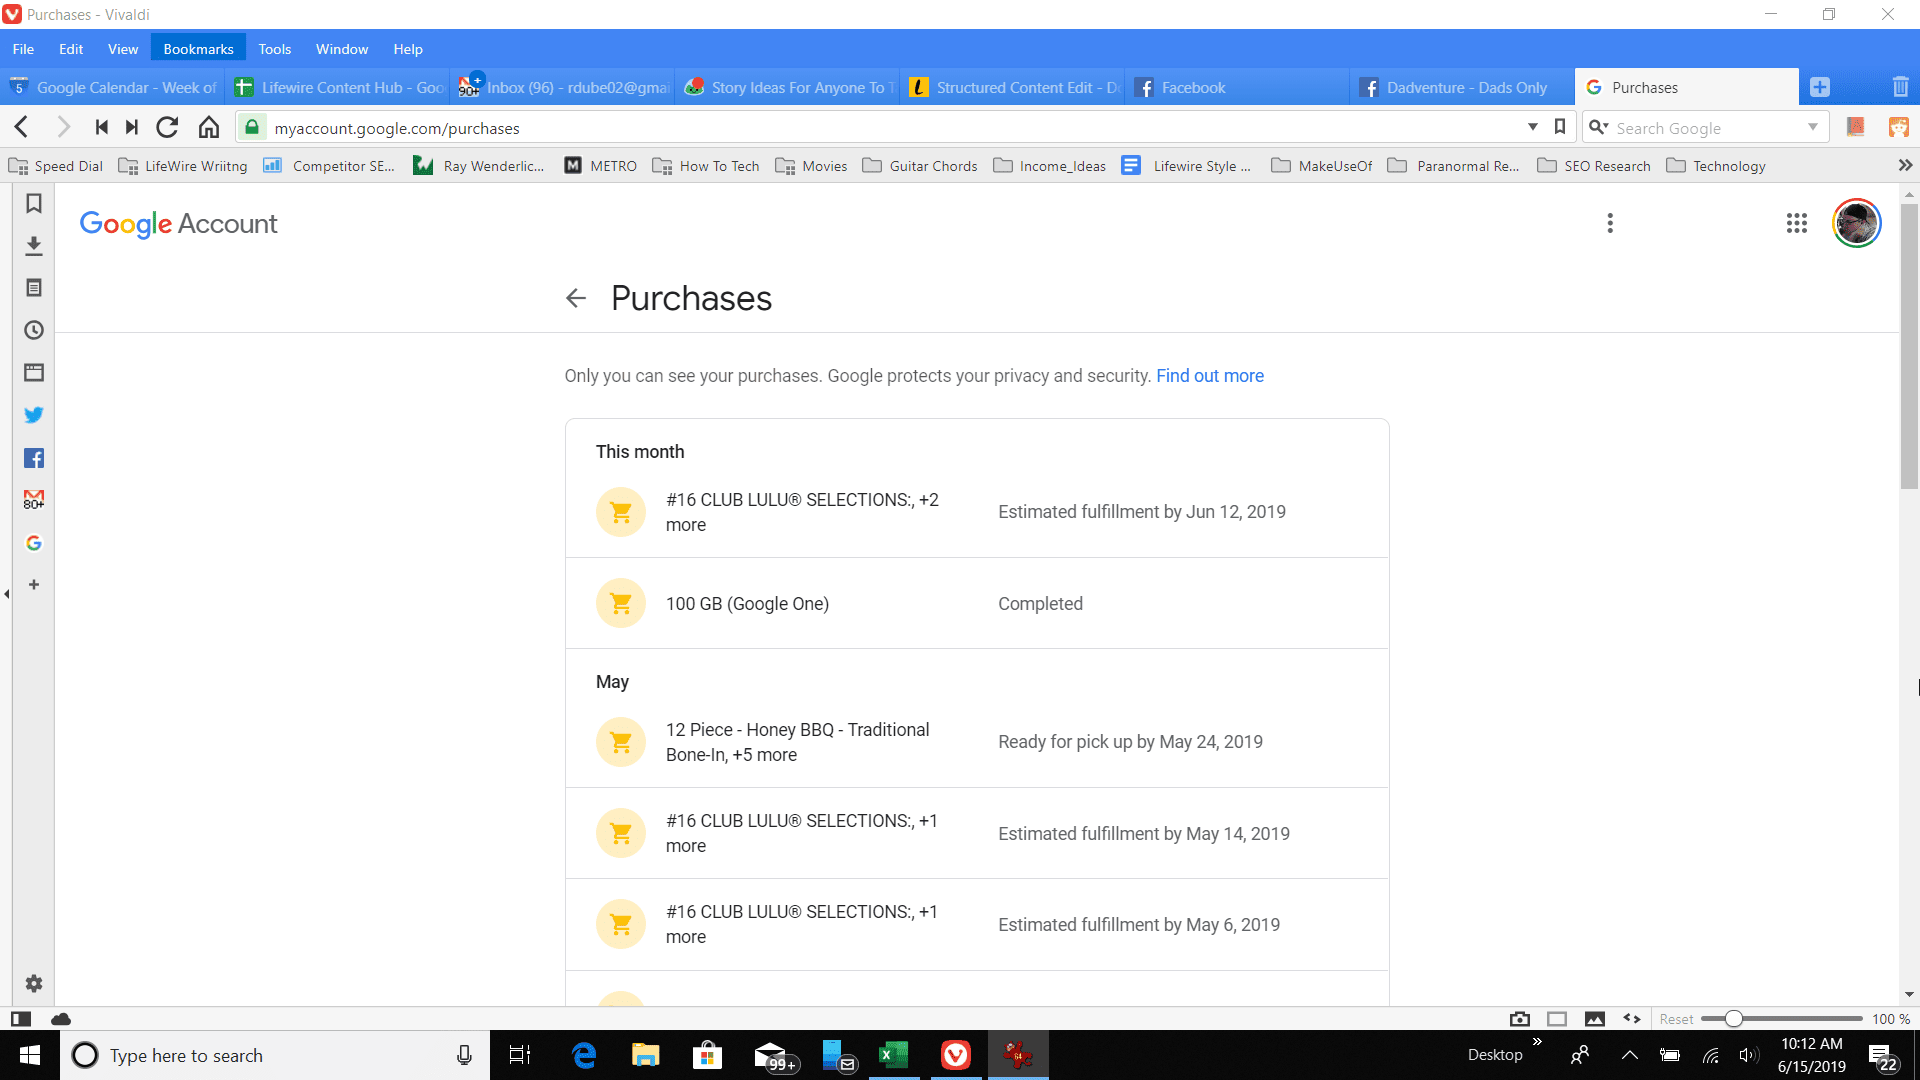 Screenshot of the Google Purchases page